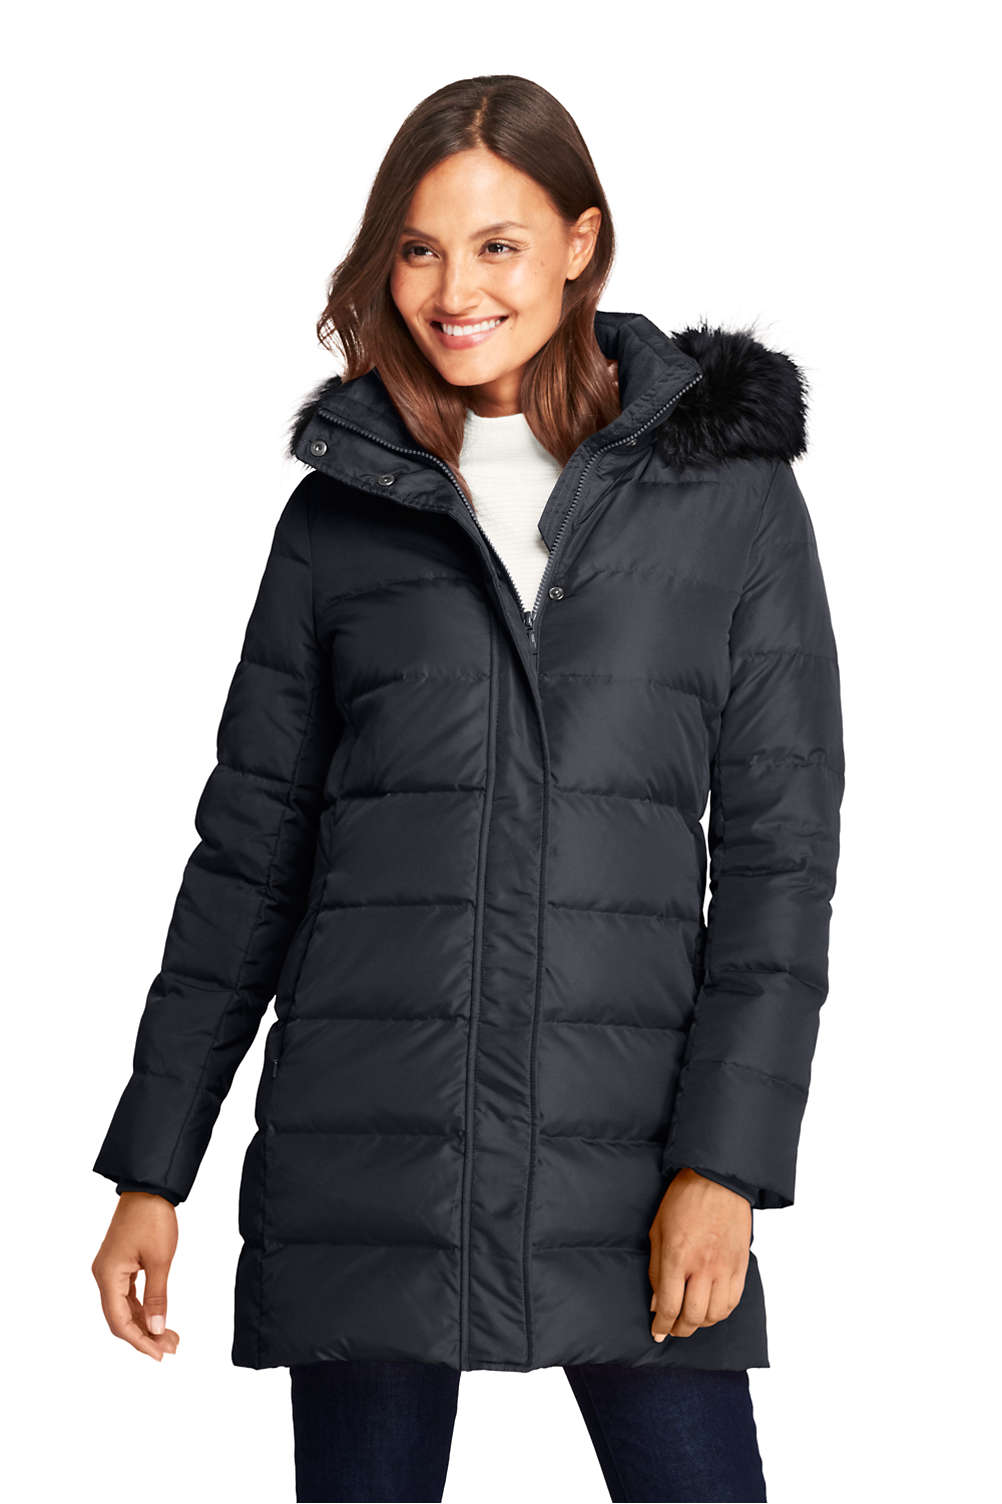 30a38febe Women's Winter Long Down Coat with Faux Fur Hood from Lands' End